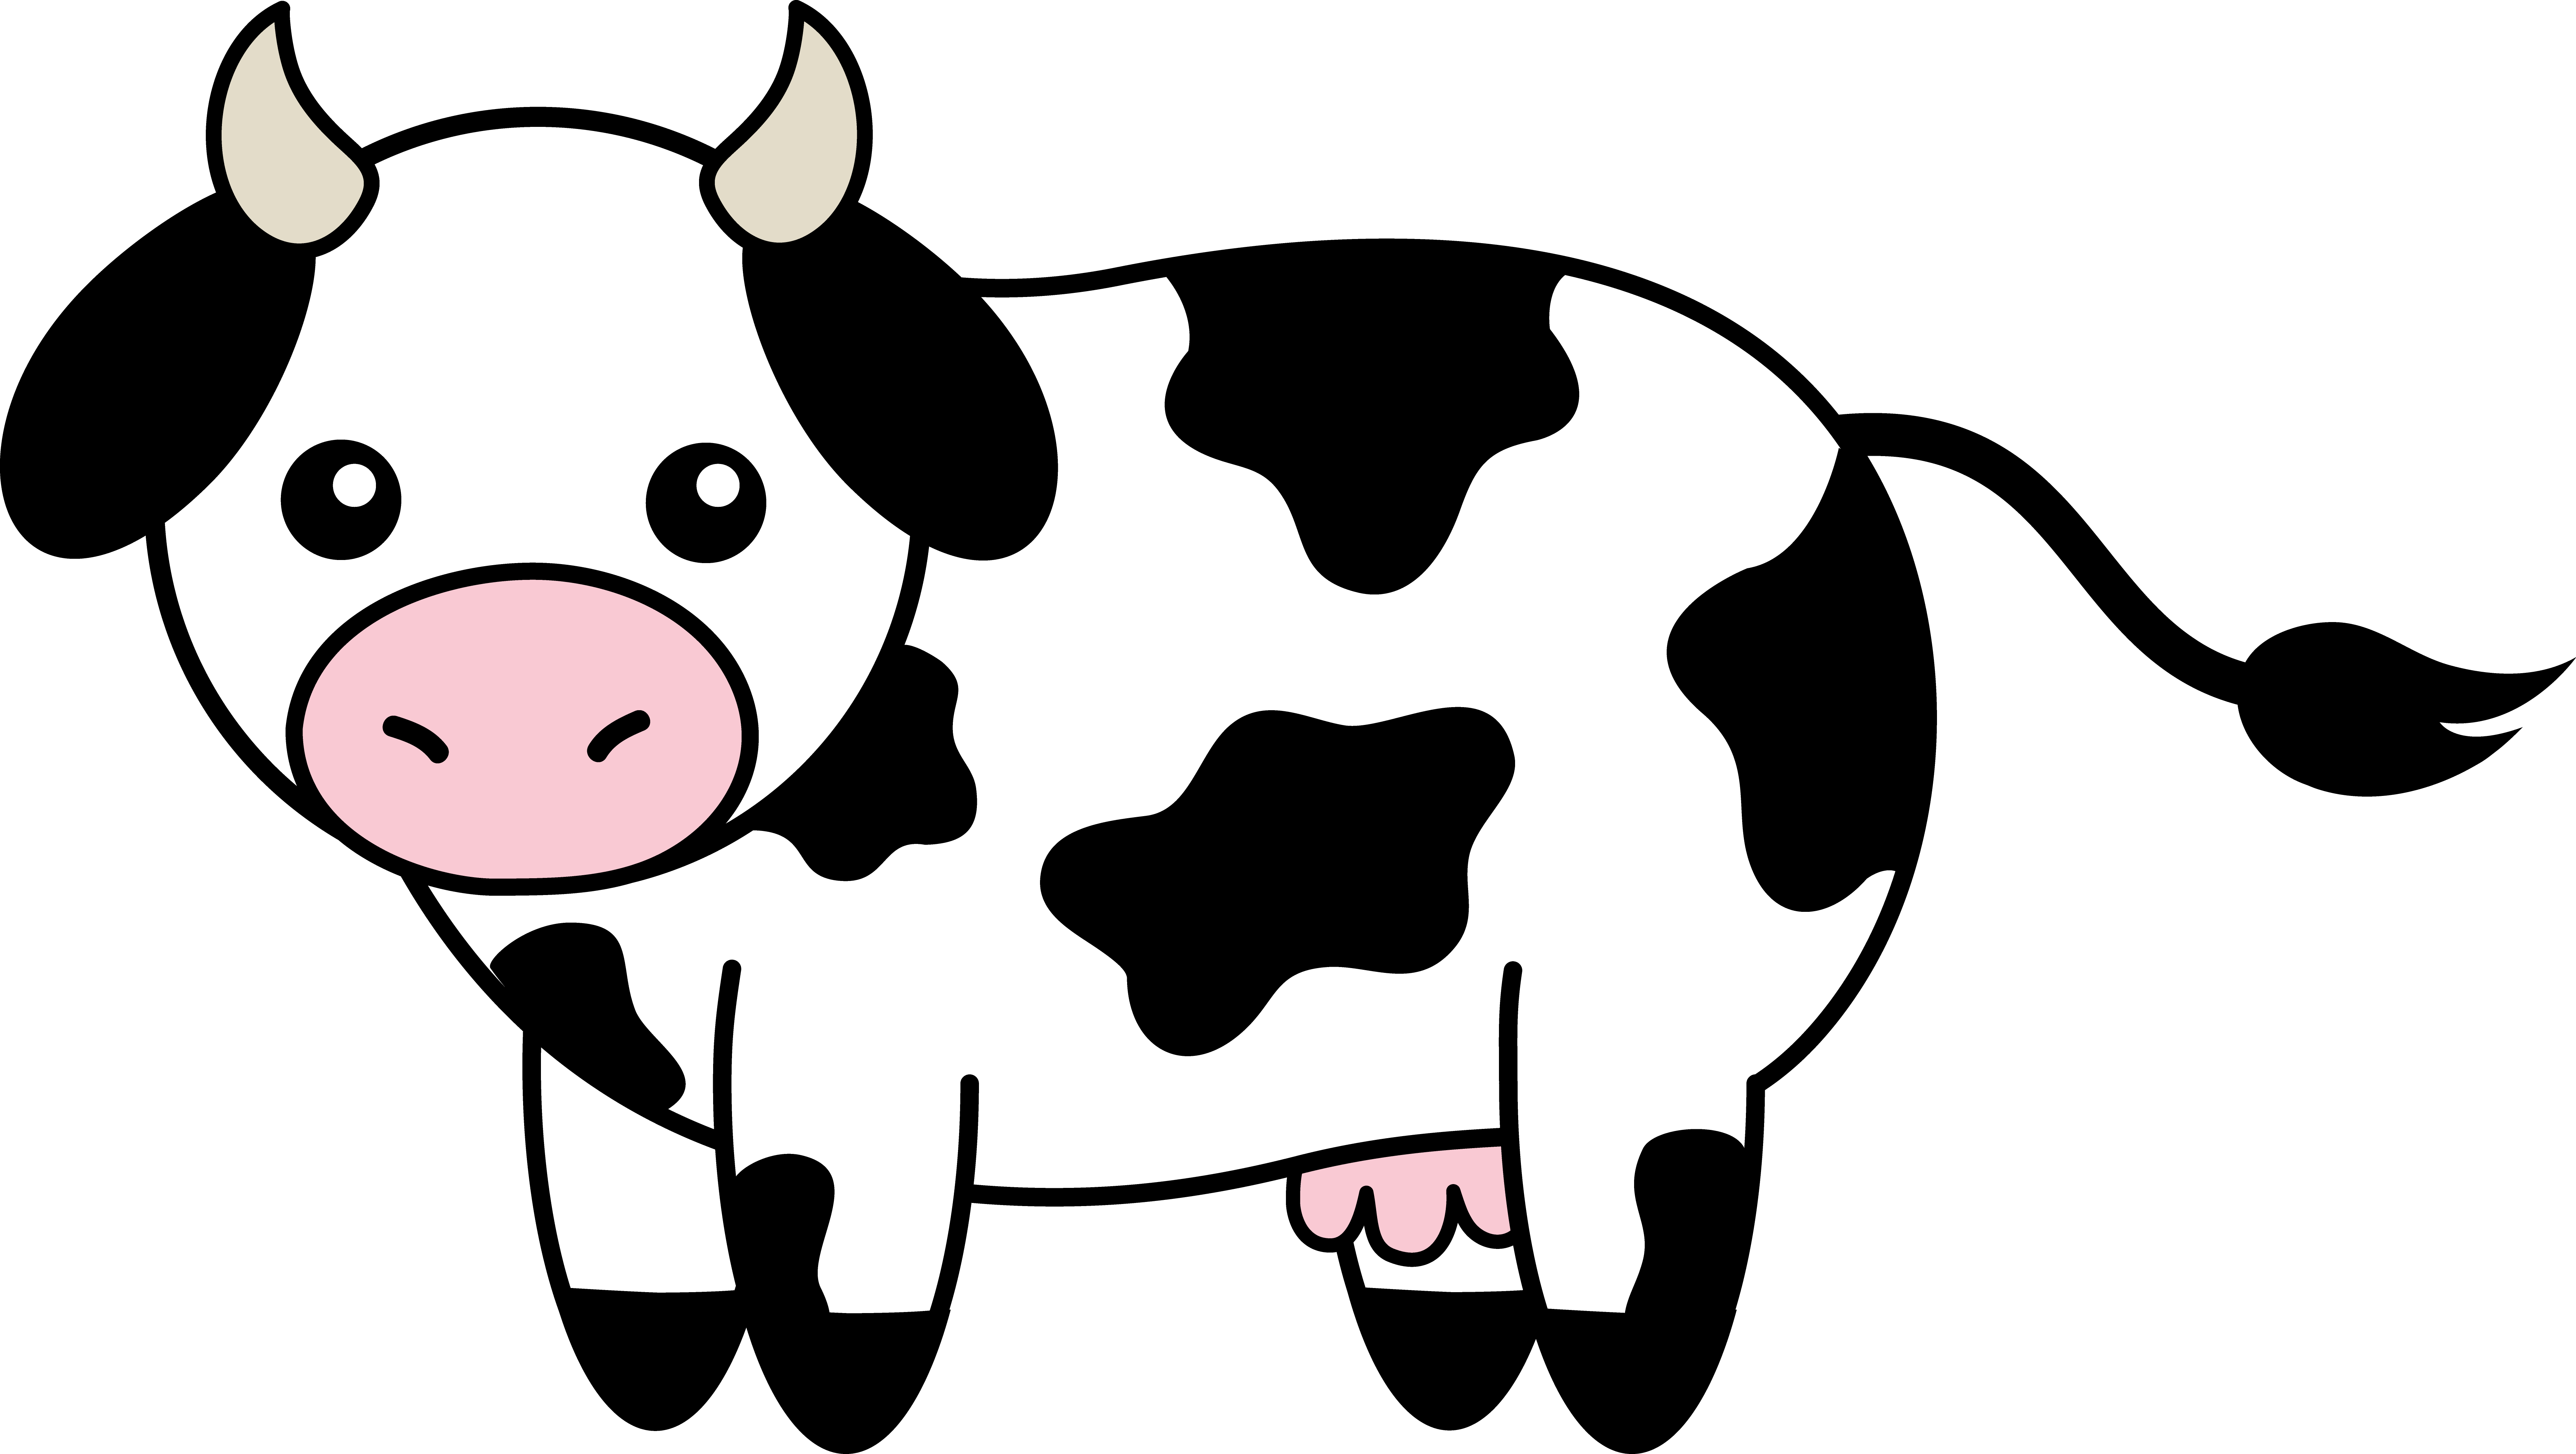 Dairy clipart. Cow black and white